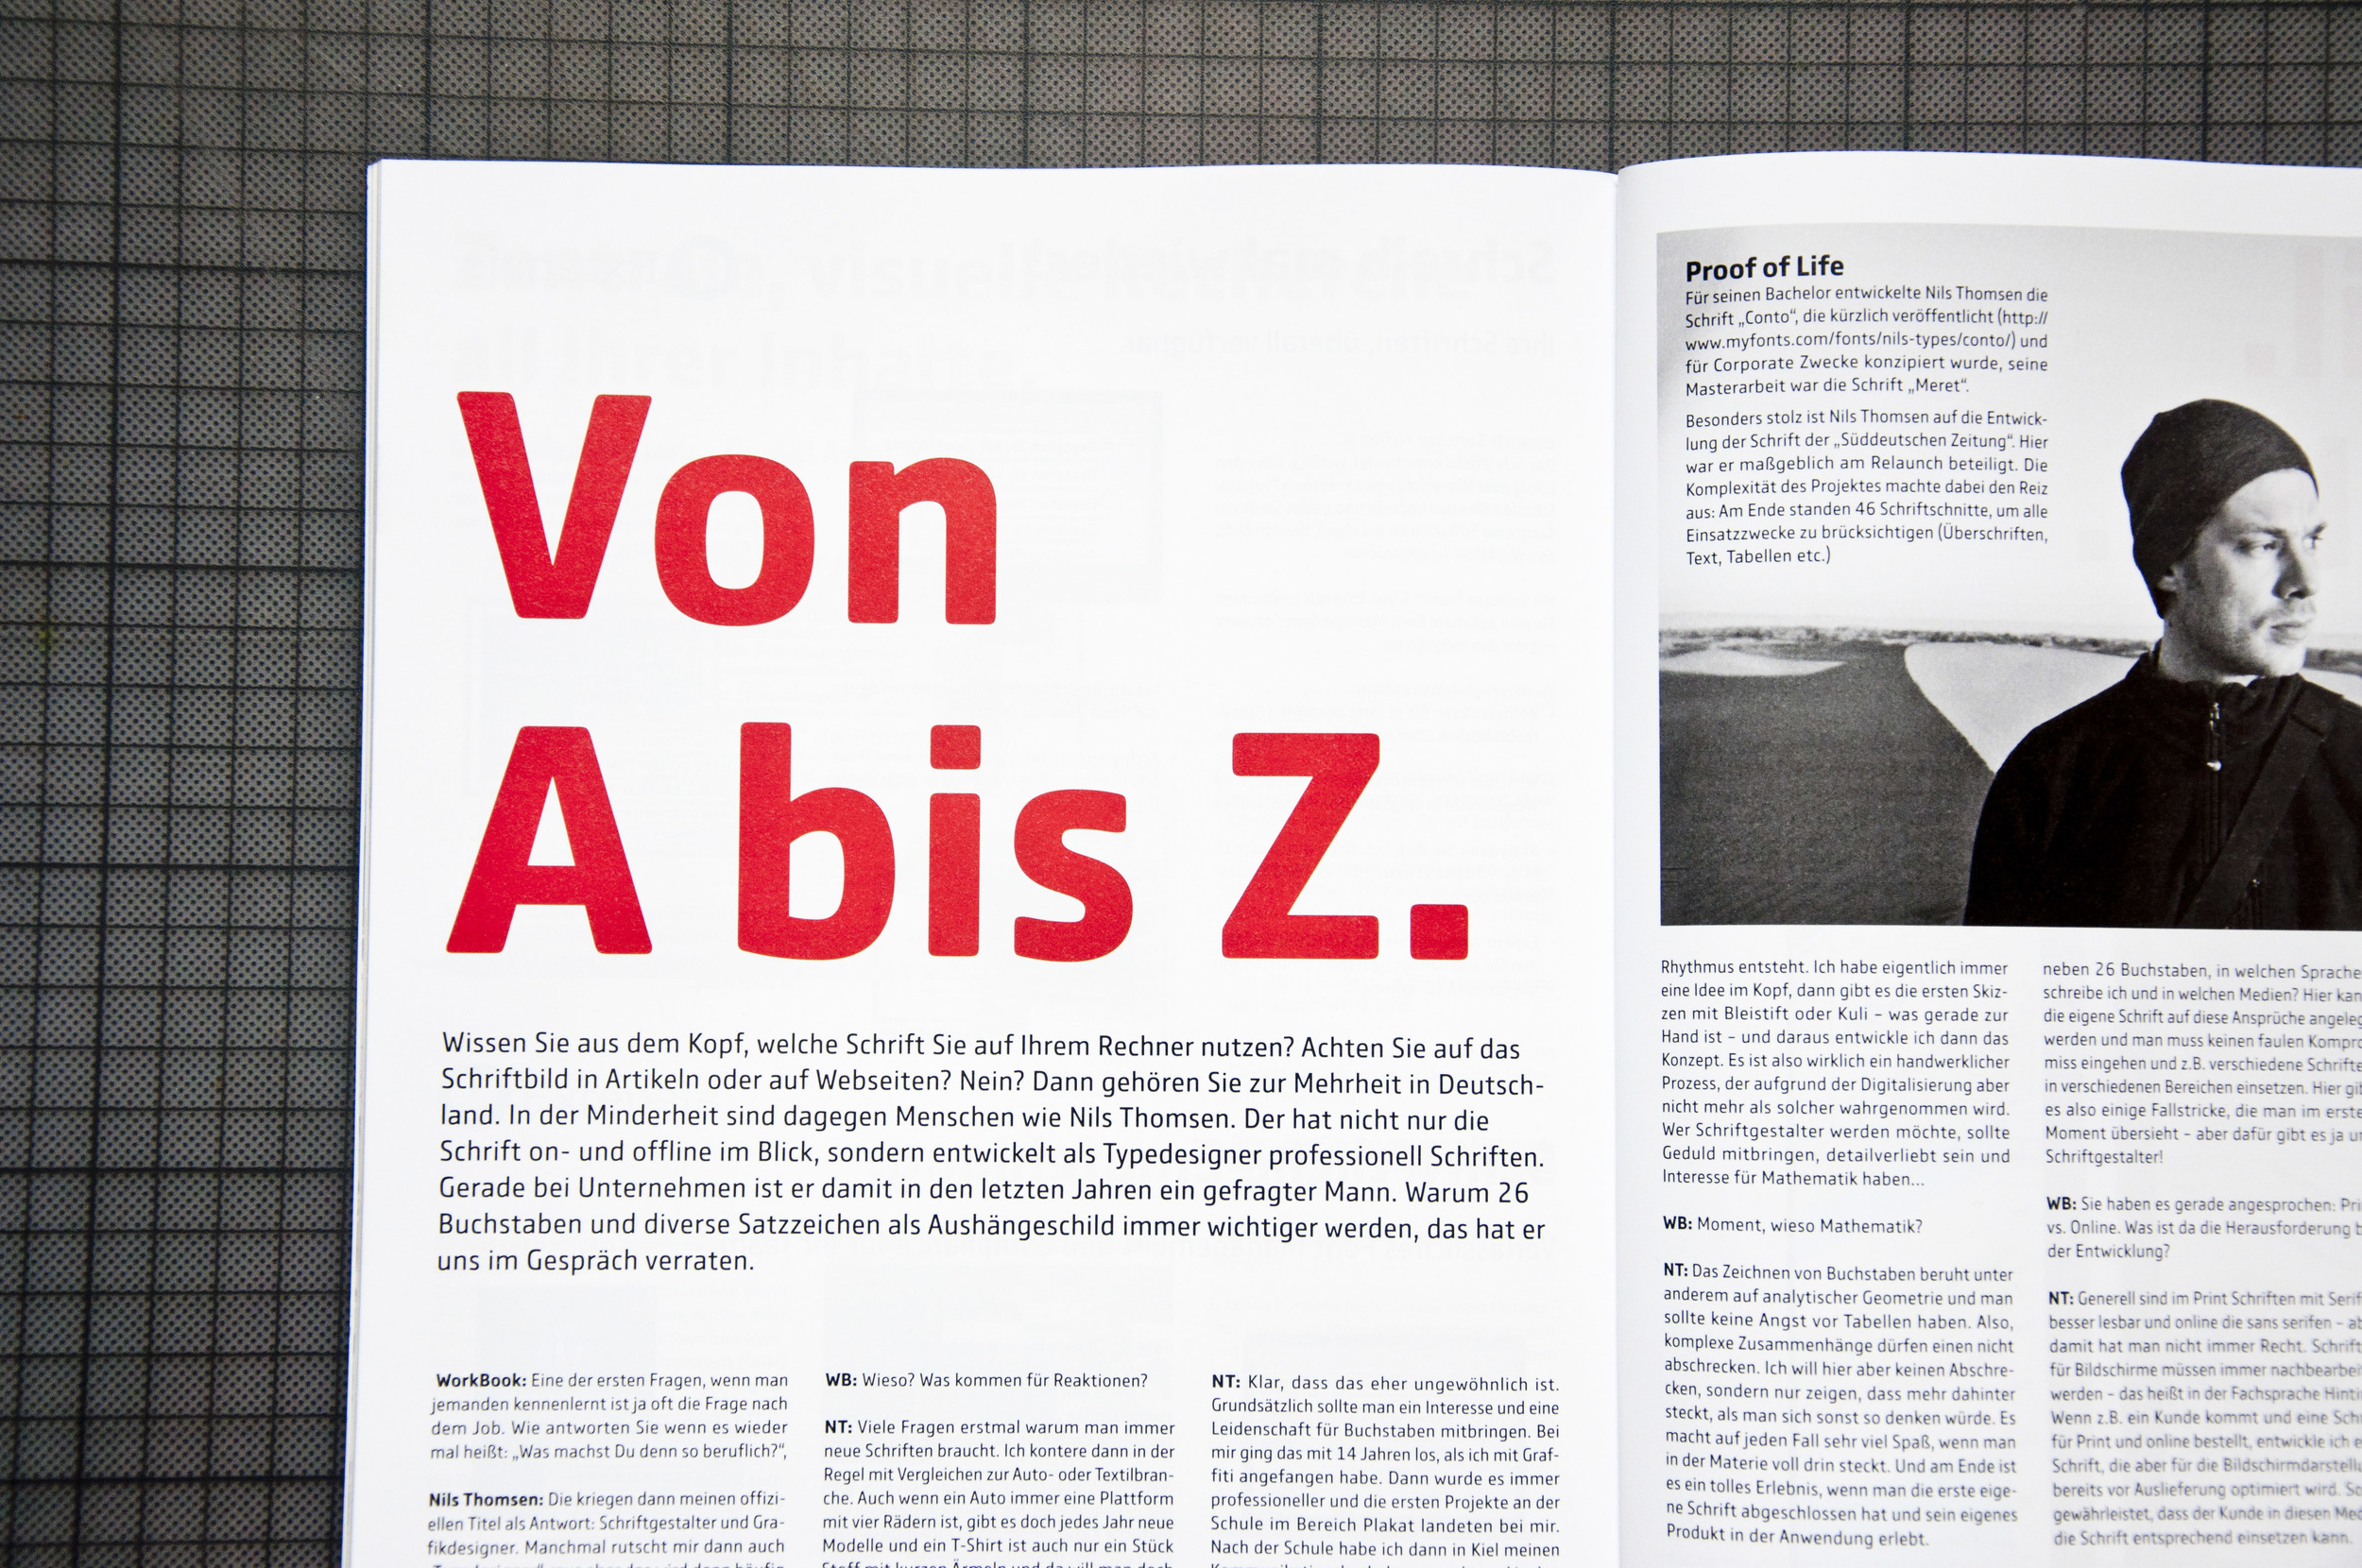 21.06.2015  News / WorkBook interview about Comspot corporate font